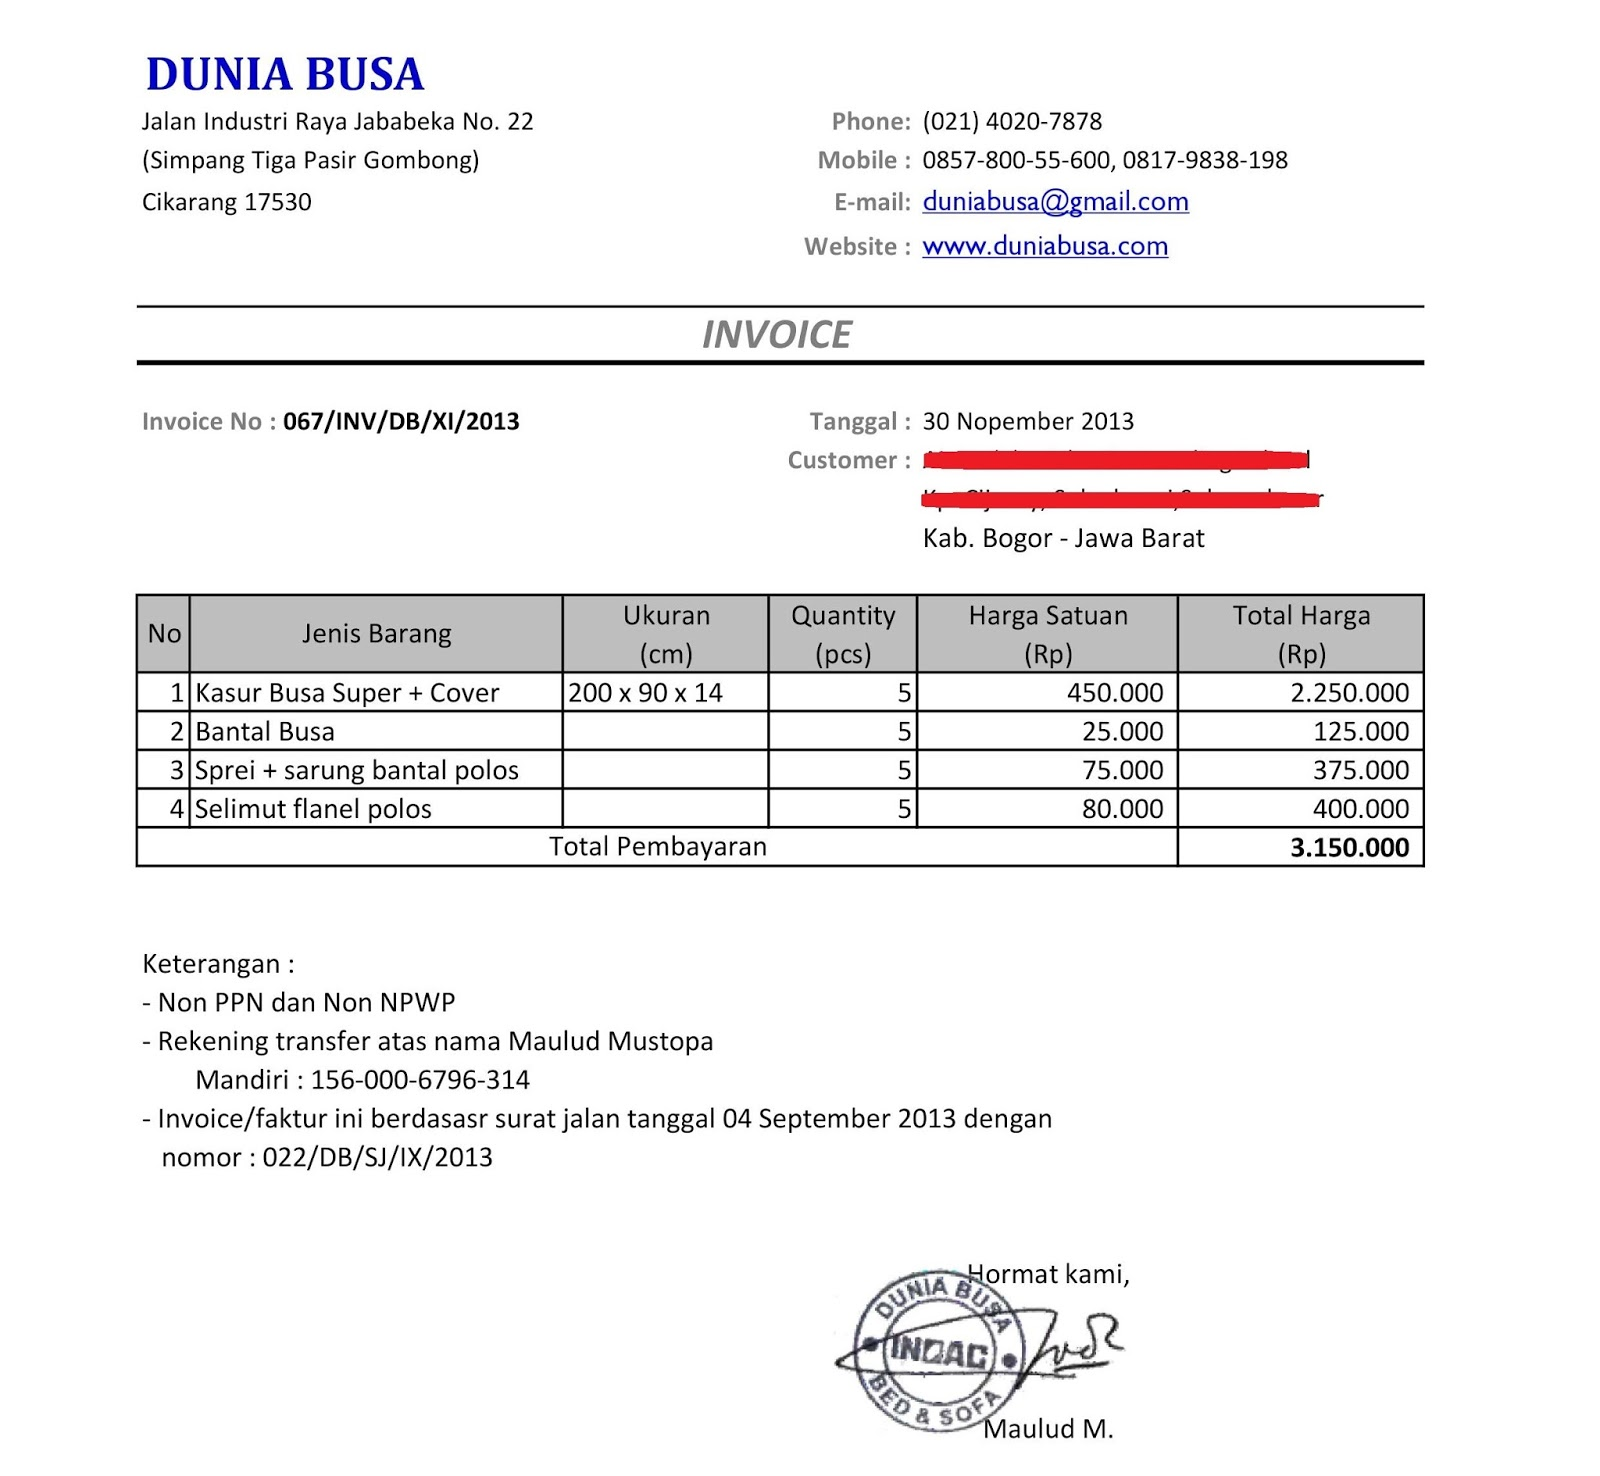 Darkfaderus  Nice Free Invoice Online  Create Invoice Online  Invoice Template  With Great Contoh Format Invoice Atau Surat Tagihan  Brankas Arsip  Free Invoice Online With Amusing Invoice Template Indesign Also Requirements Of A Vat Invoice In Addition Free Invoice Template For Word And Invoice And Receipt As Well As What Is The Invoice Price Additionally Job Invoices From Sklepco With Darkfaderus  Great Free Invoice Online  Create Invoice Online  Invoice Template  With Amusing Contoh Format Invoice Atau Surat Tagihan  Brankas Arsip  Free Invoice Online And Nice Invoice Template Indesign Also Requirements Of A Vat Invoice In Addition Free Invoice Template For Word From Sklepco